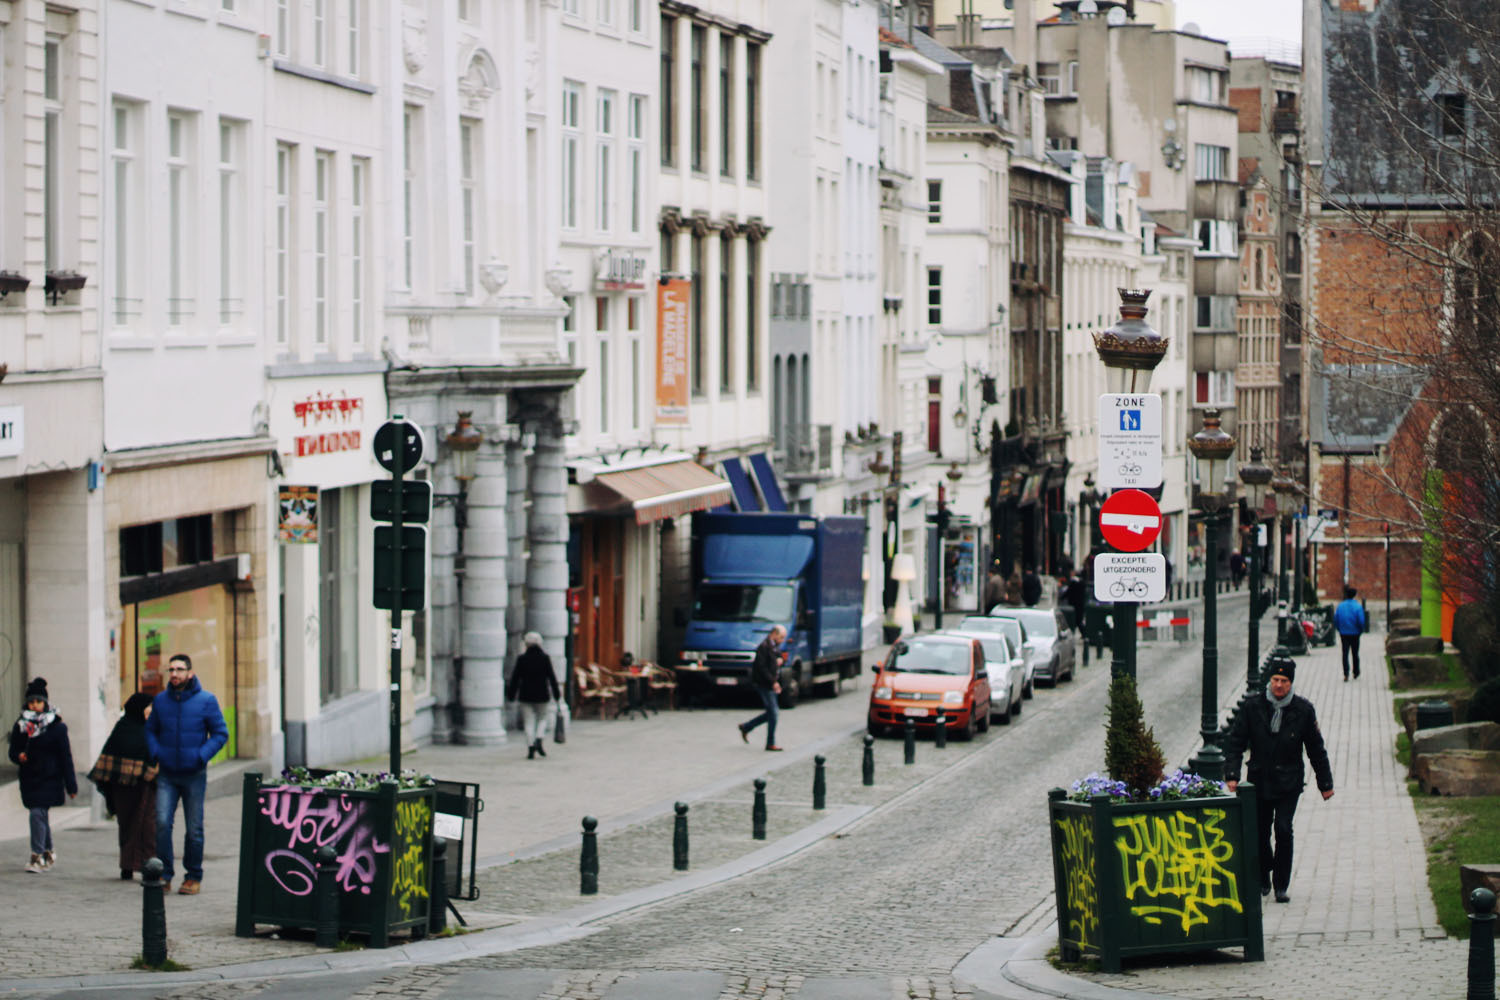 Postcards From Brussels, Belgium